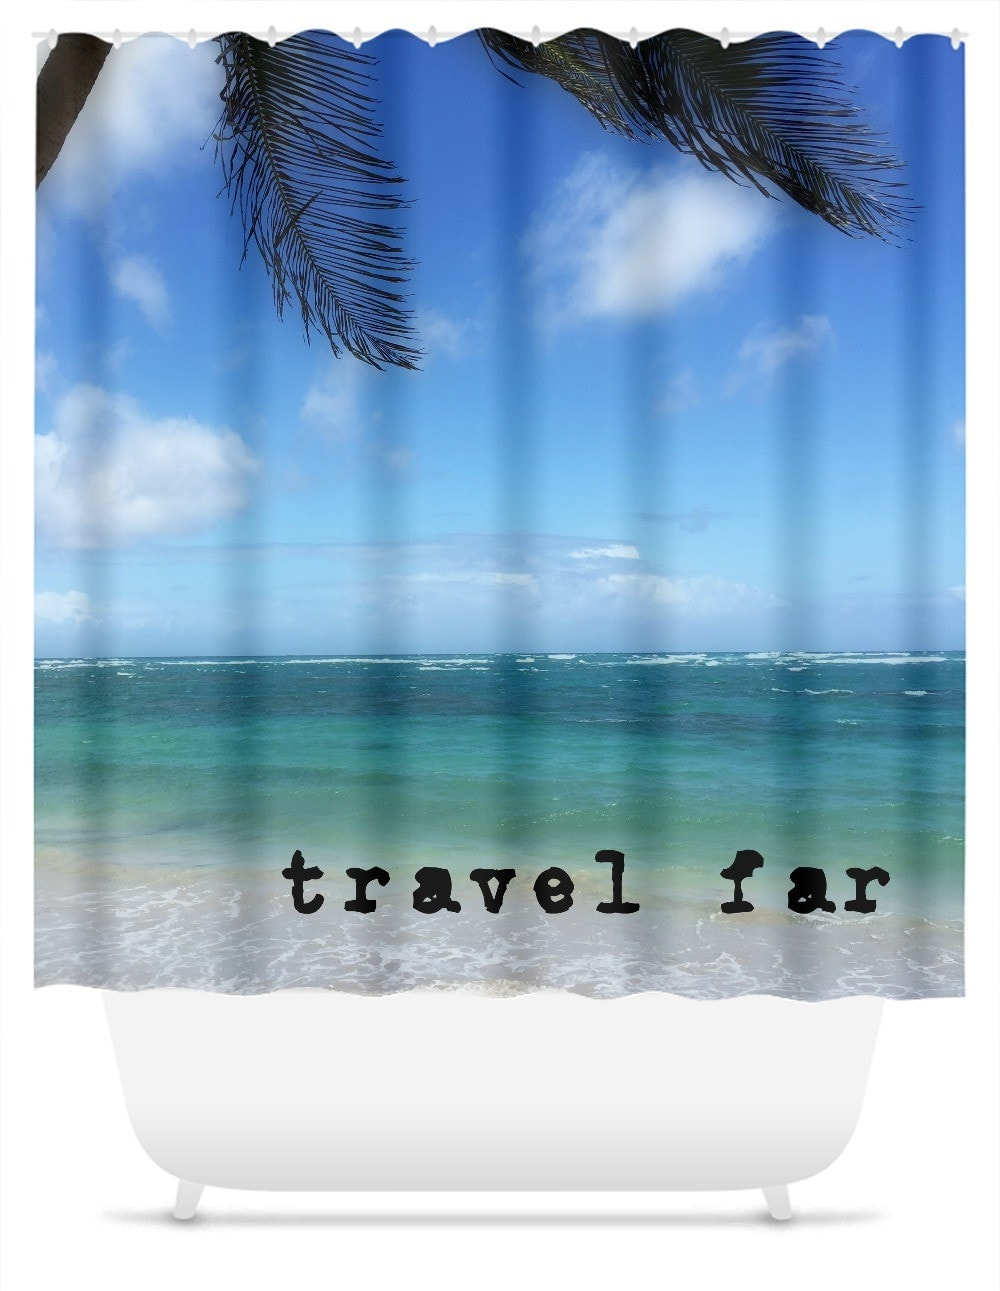 Travel Far St Lucia Shower Curtain FlyShop